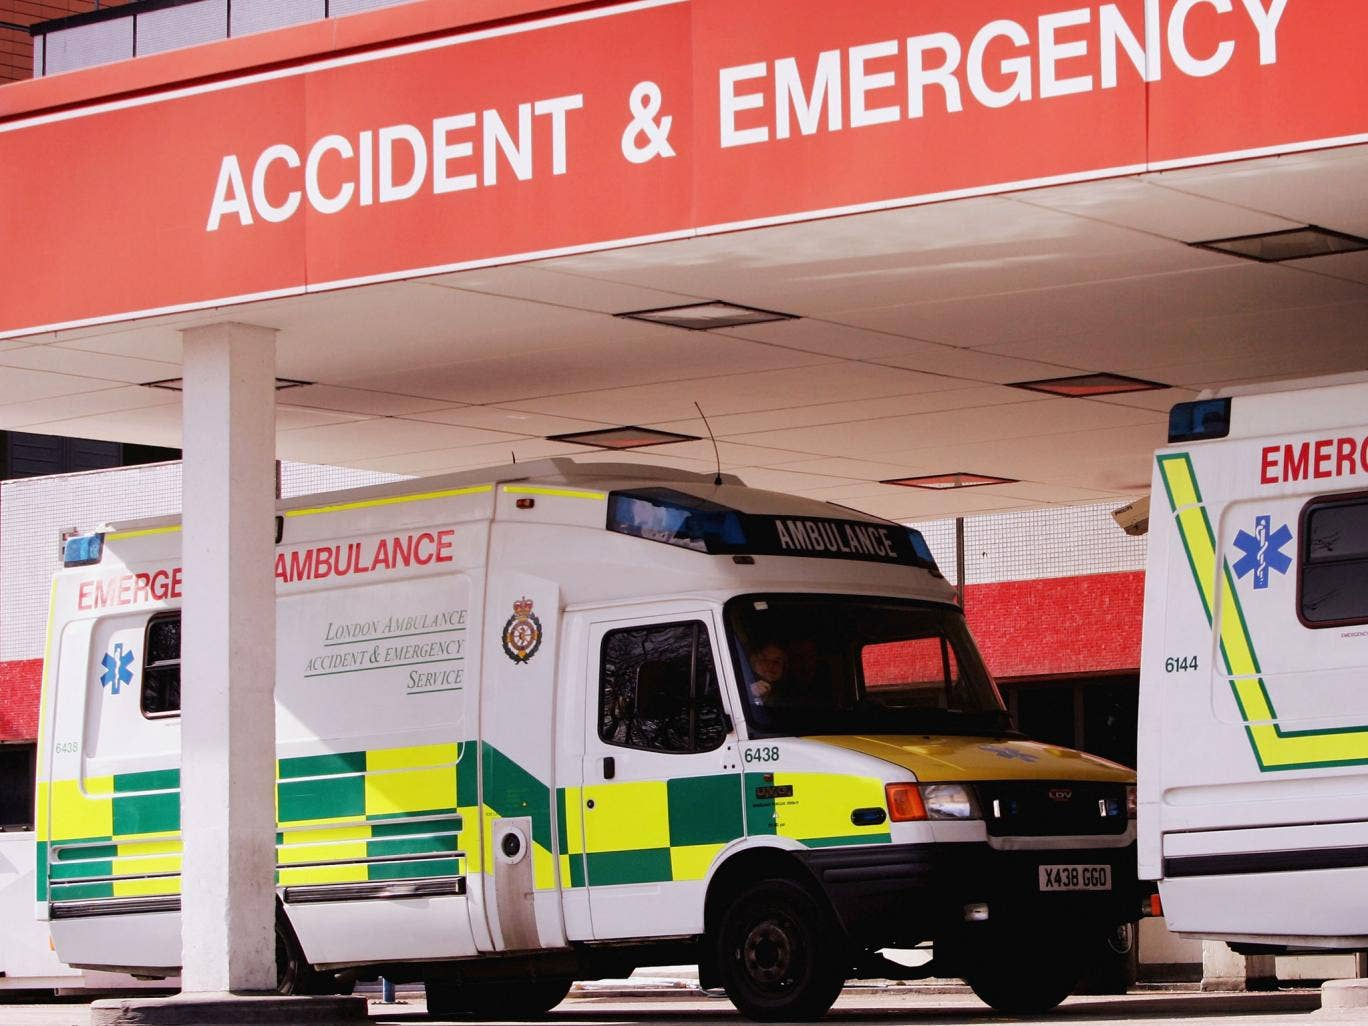 18,300,190 people attended A&E units in England between February 2012 and January 2013